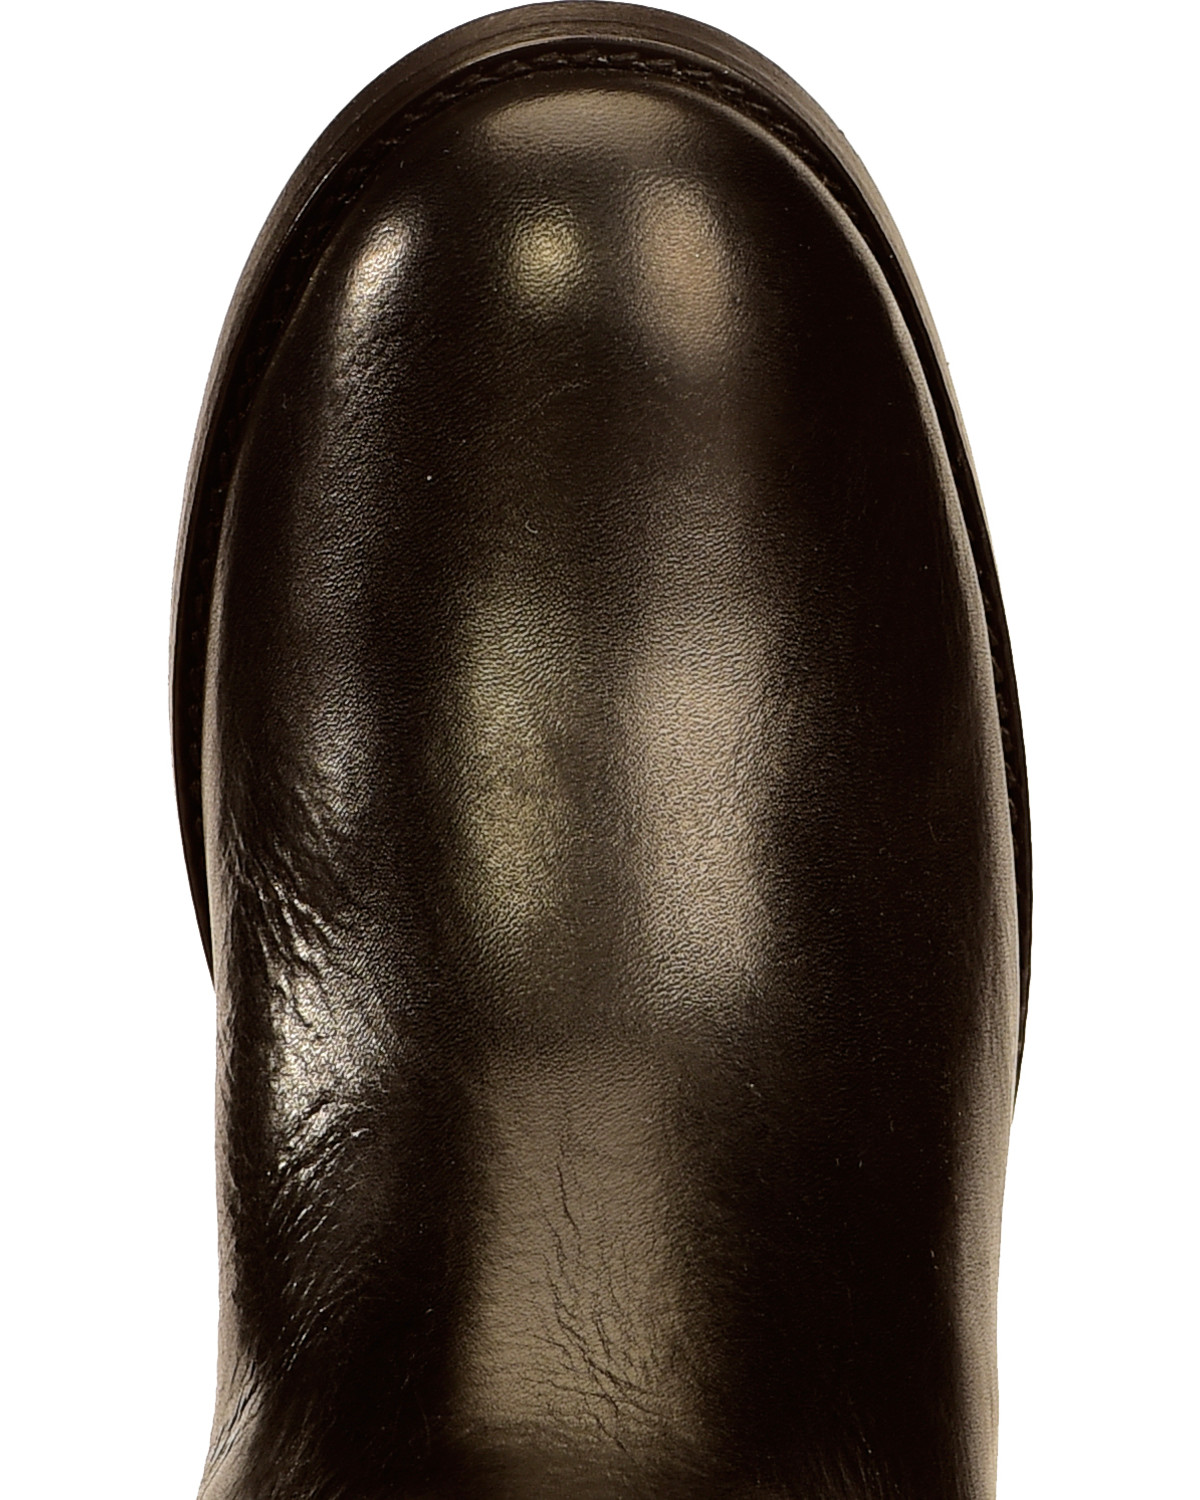 669461b2f1b7 Frye Women s Melissa Button Riding Boots - Wide Calf - Country Outfitter